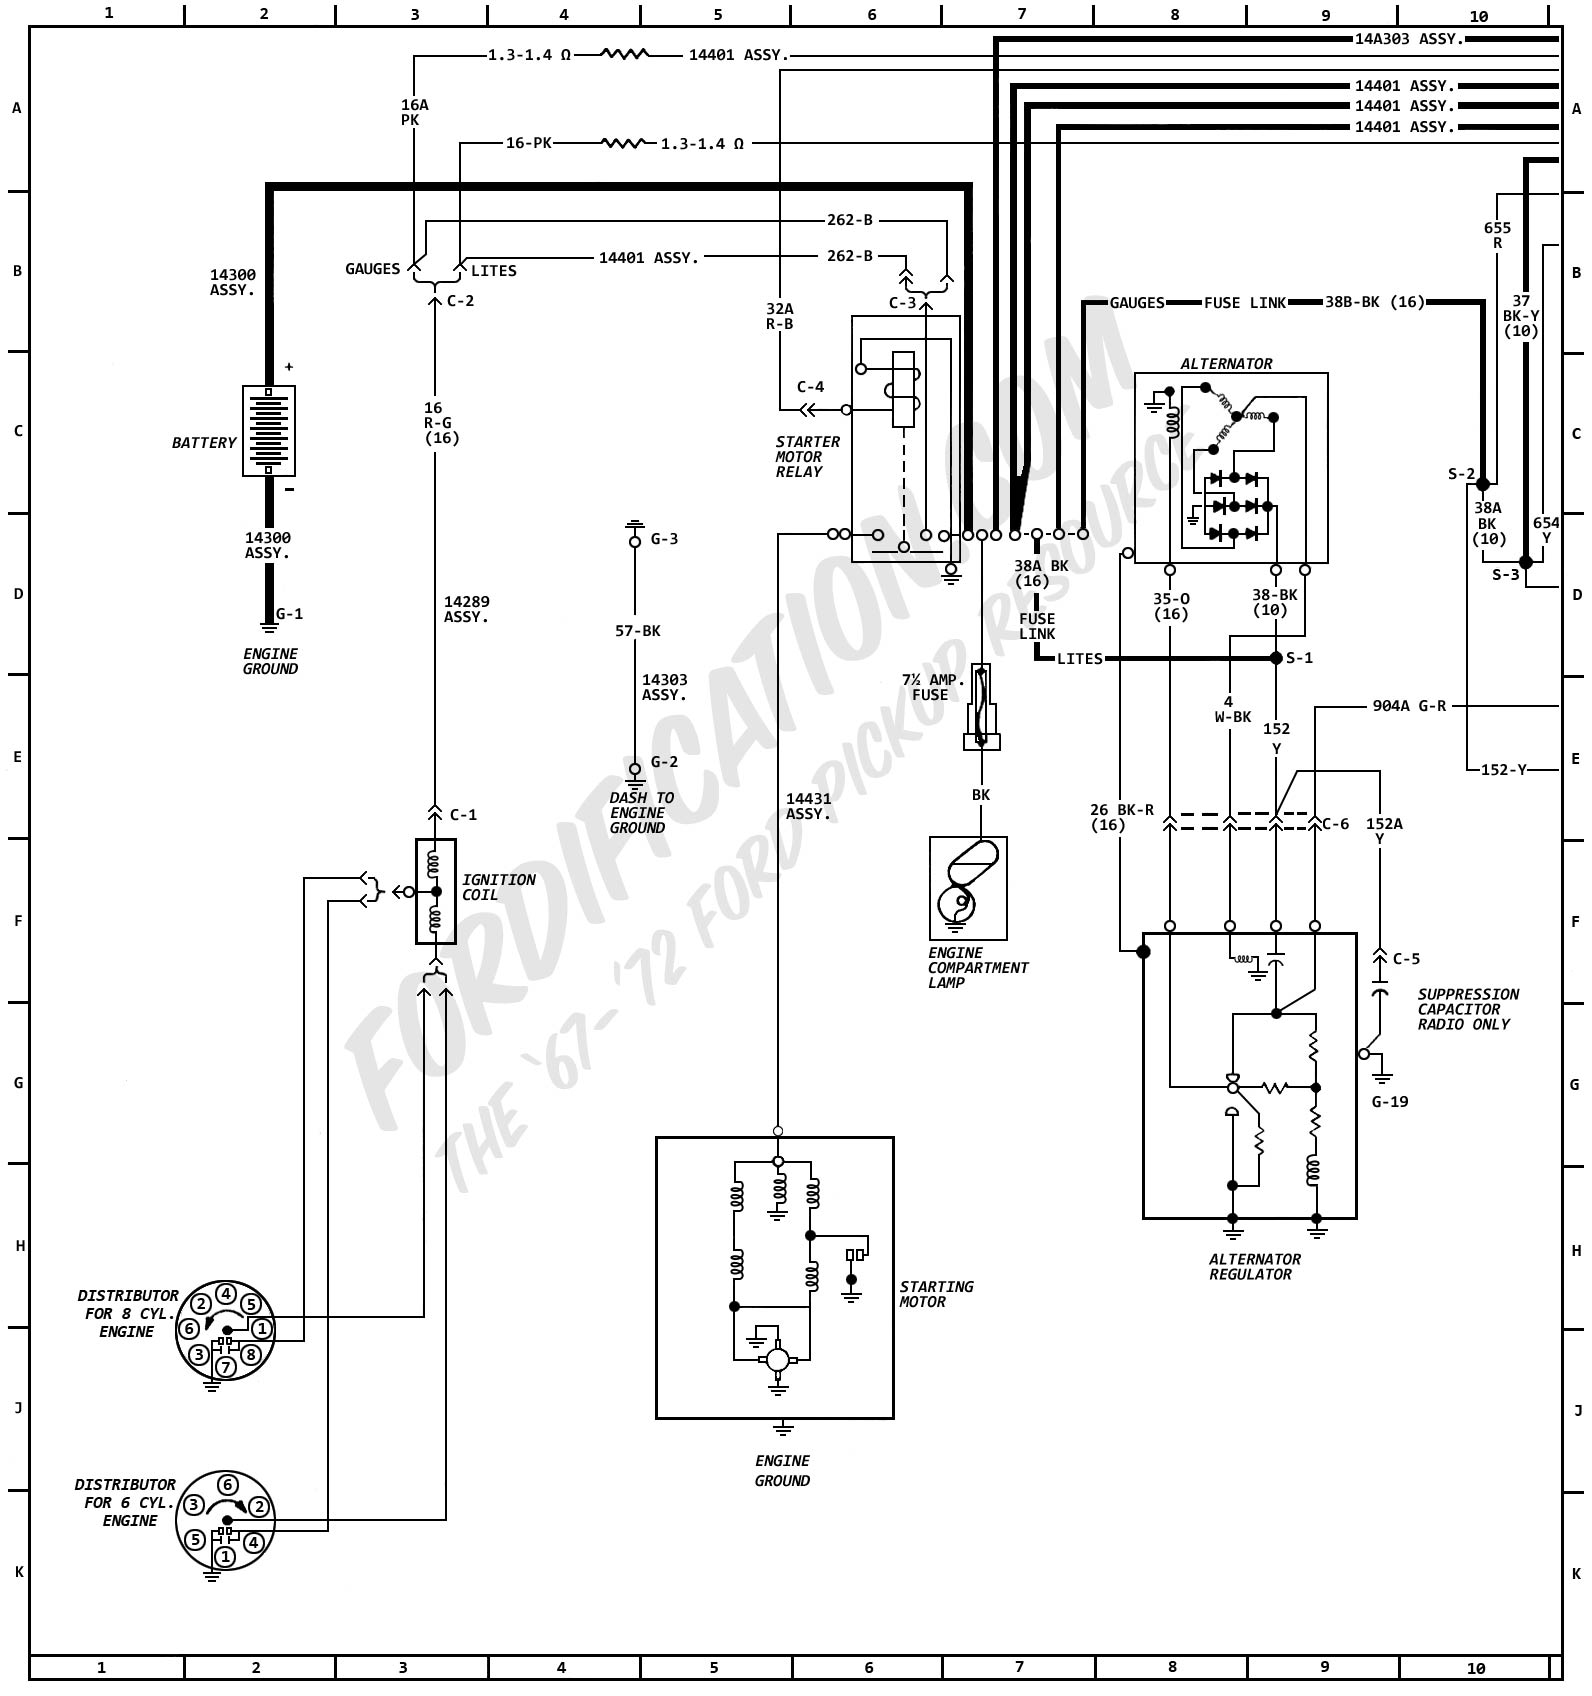 1972MasterWiring_01 1972 ford truck wiring diagrams fordification com ford truck wiring diagrams at fashall.co